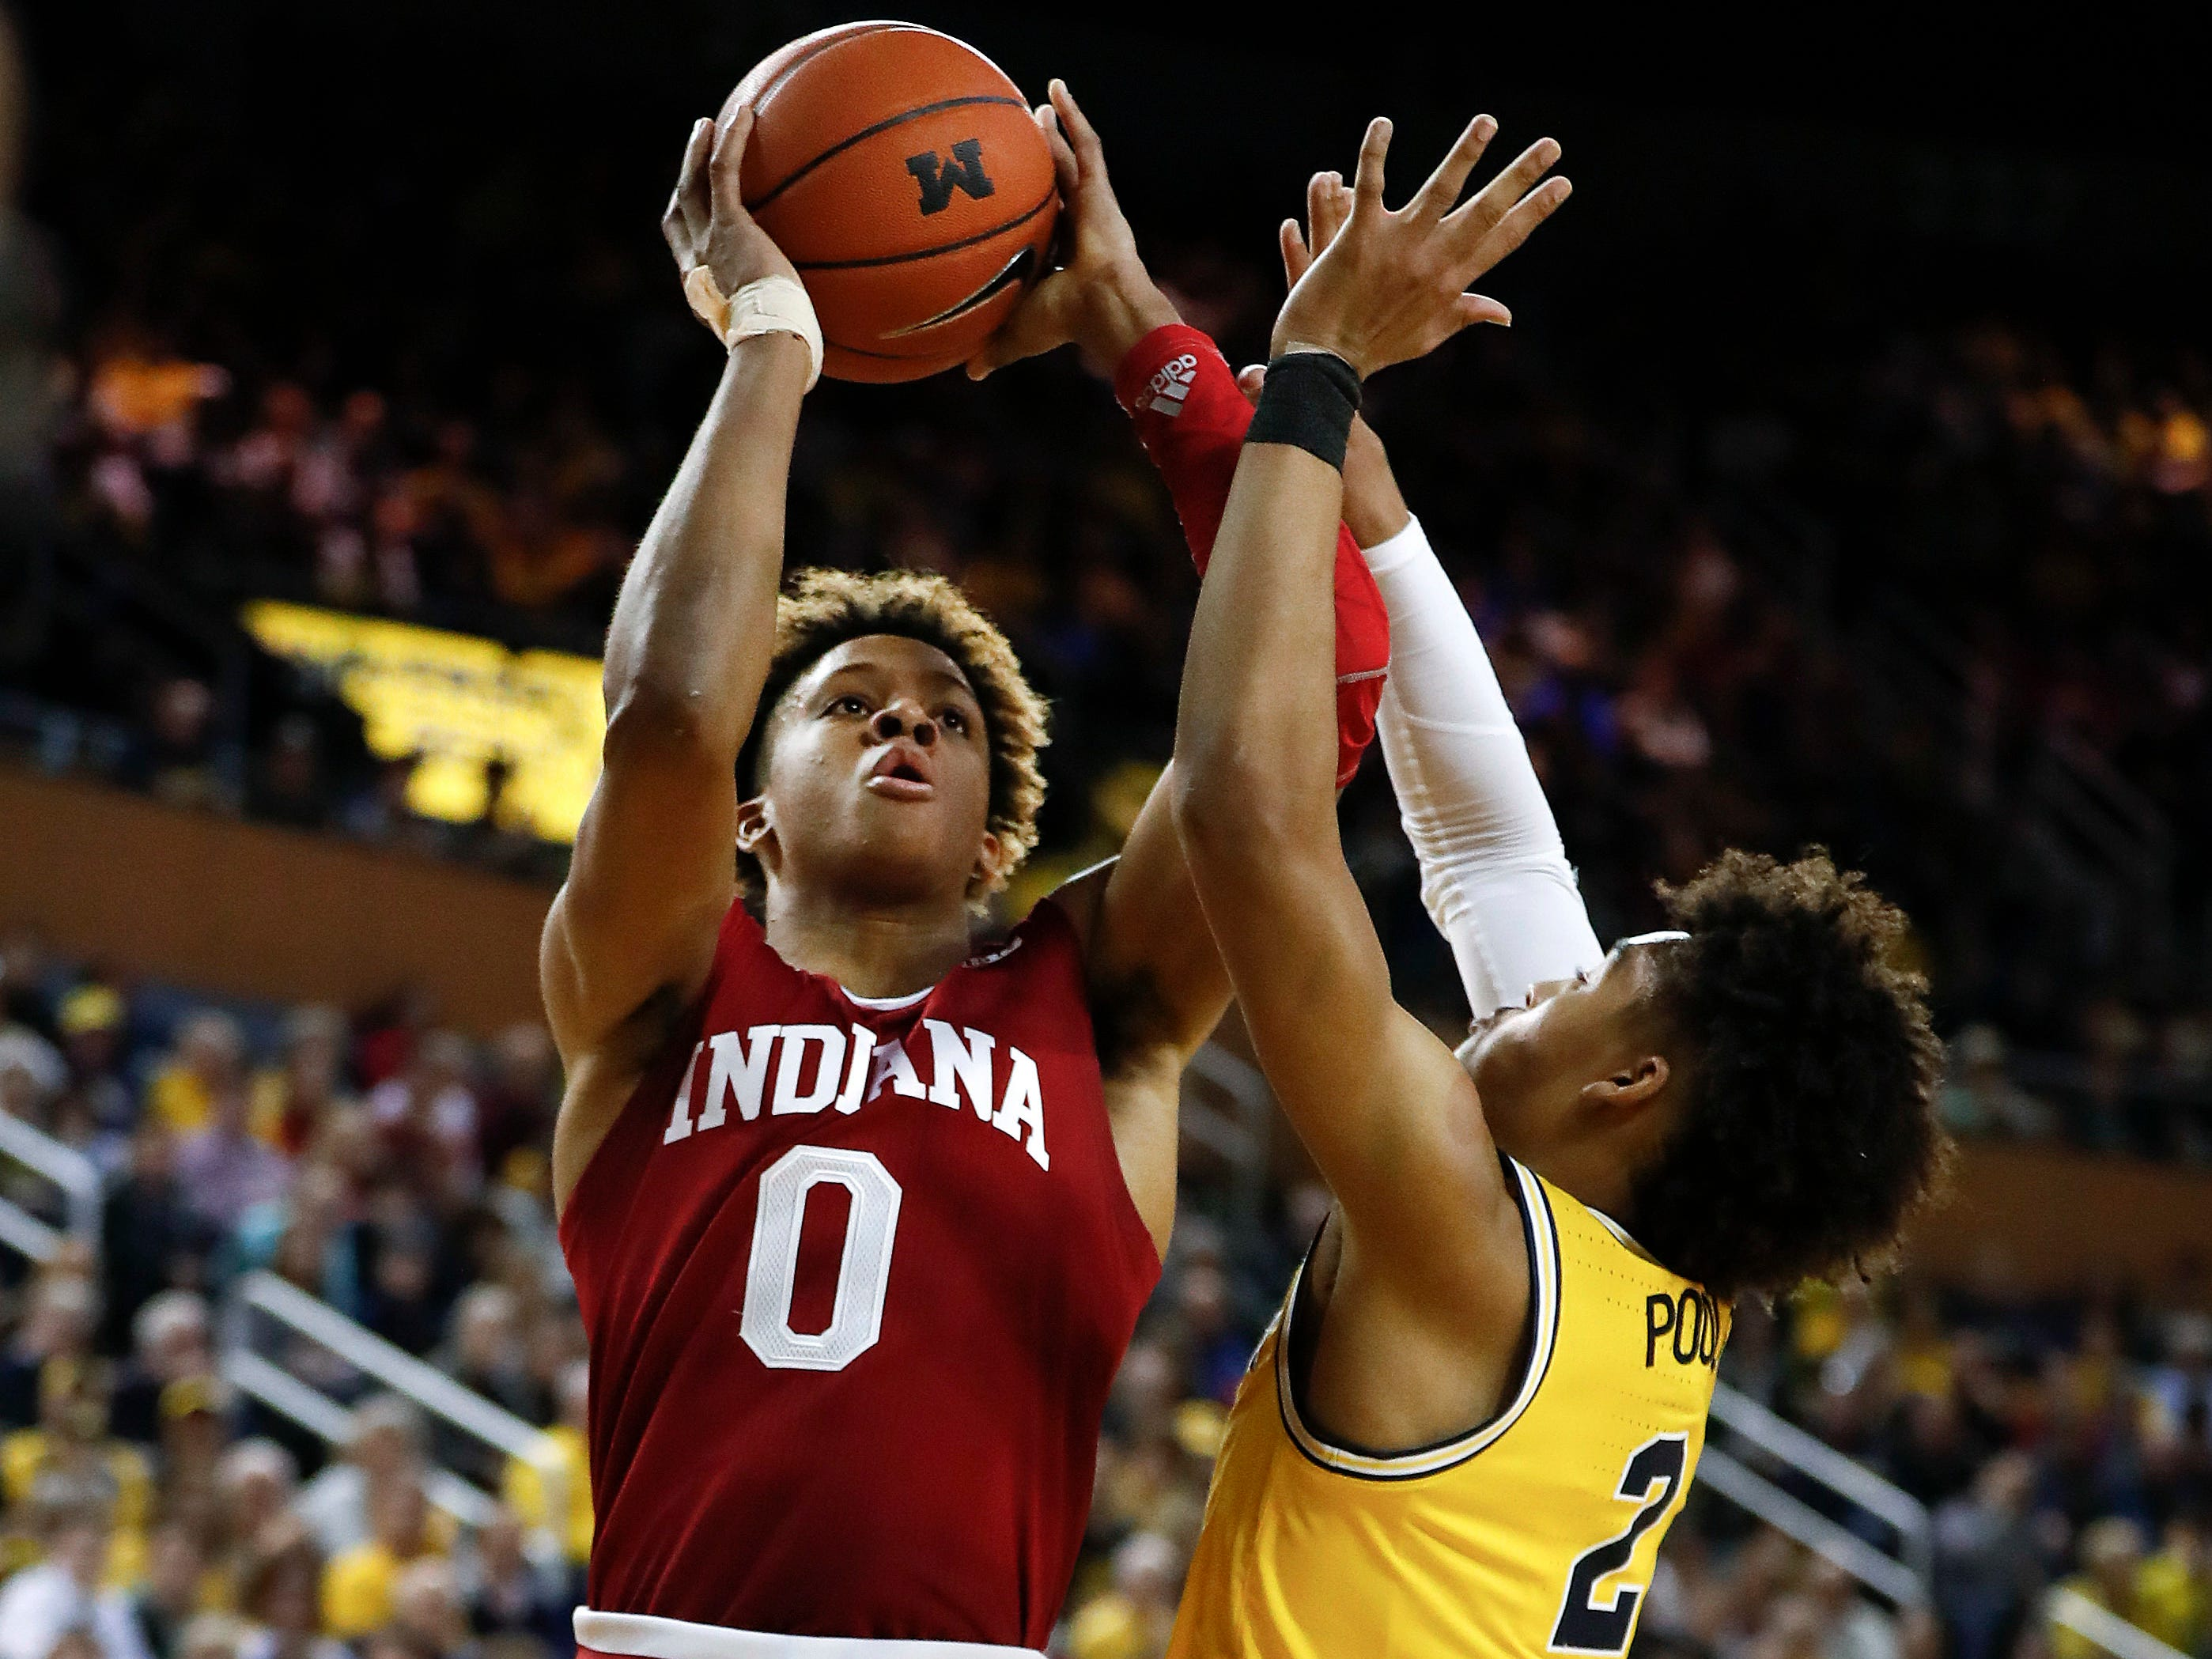 Indiana guard Romeo Langford (0) shoots on Michigan guard Jordan Poole (2) in the first half of an NCAA college basketball game in Ann Arbor, Mich., Sunday, Jan. 6, 2019.